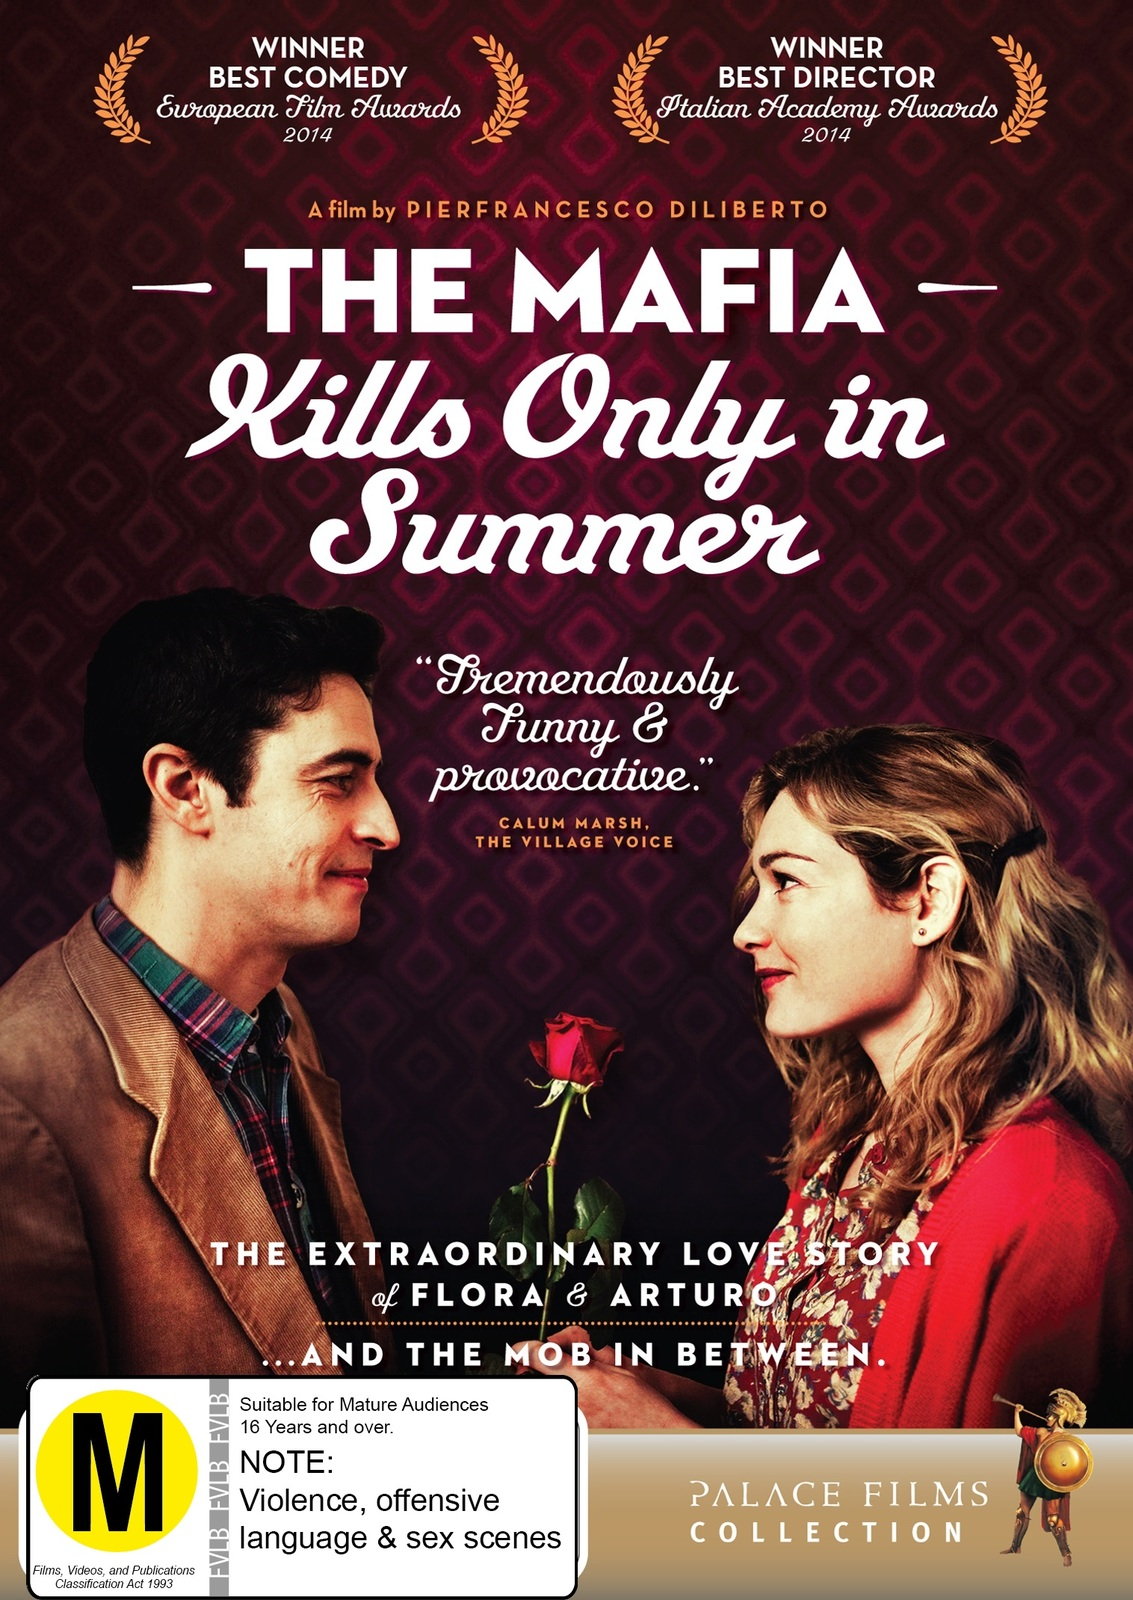 The Mafia Kills Only In Summer image